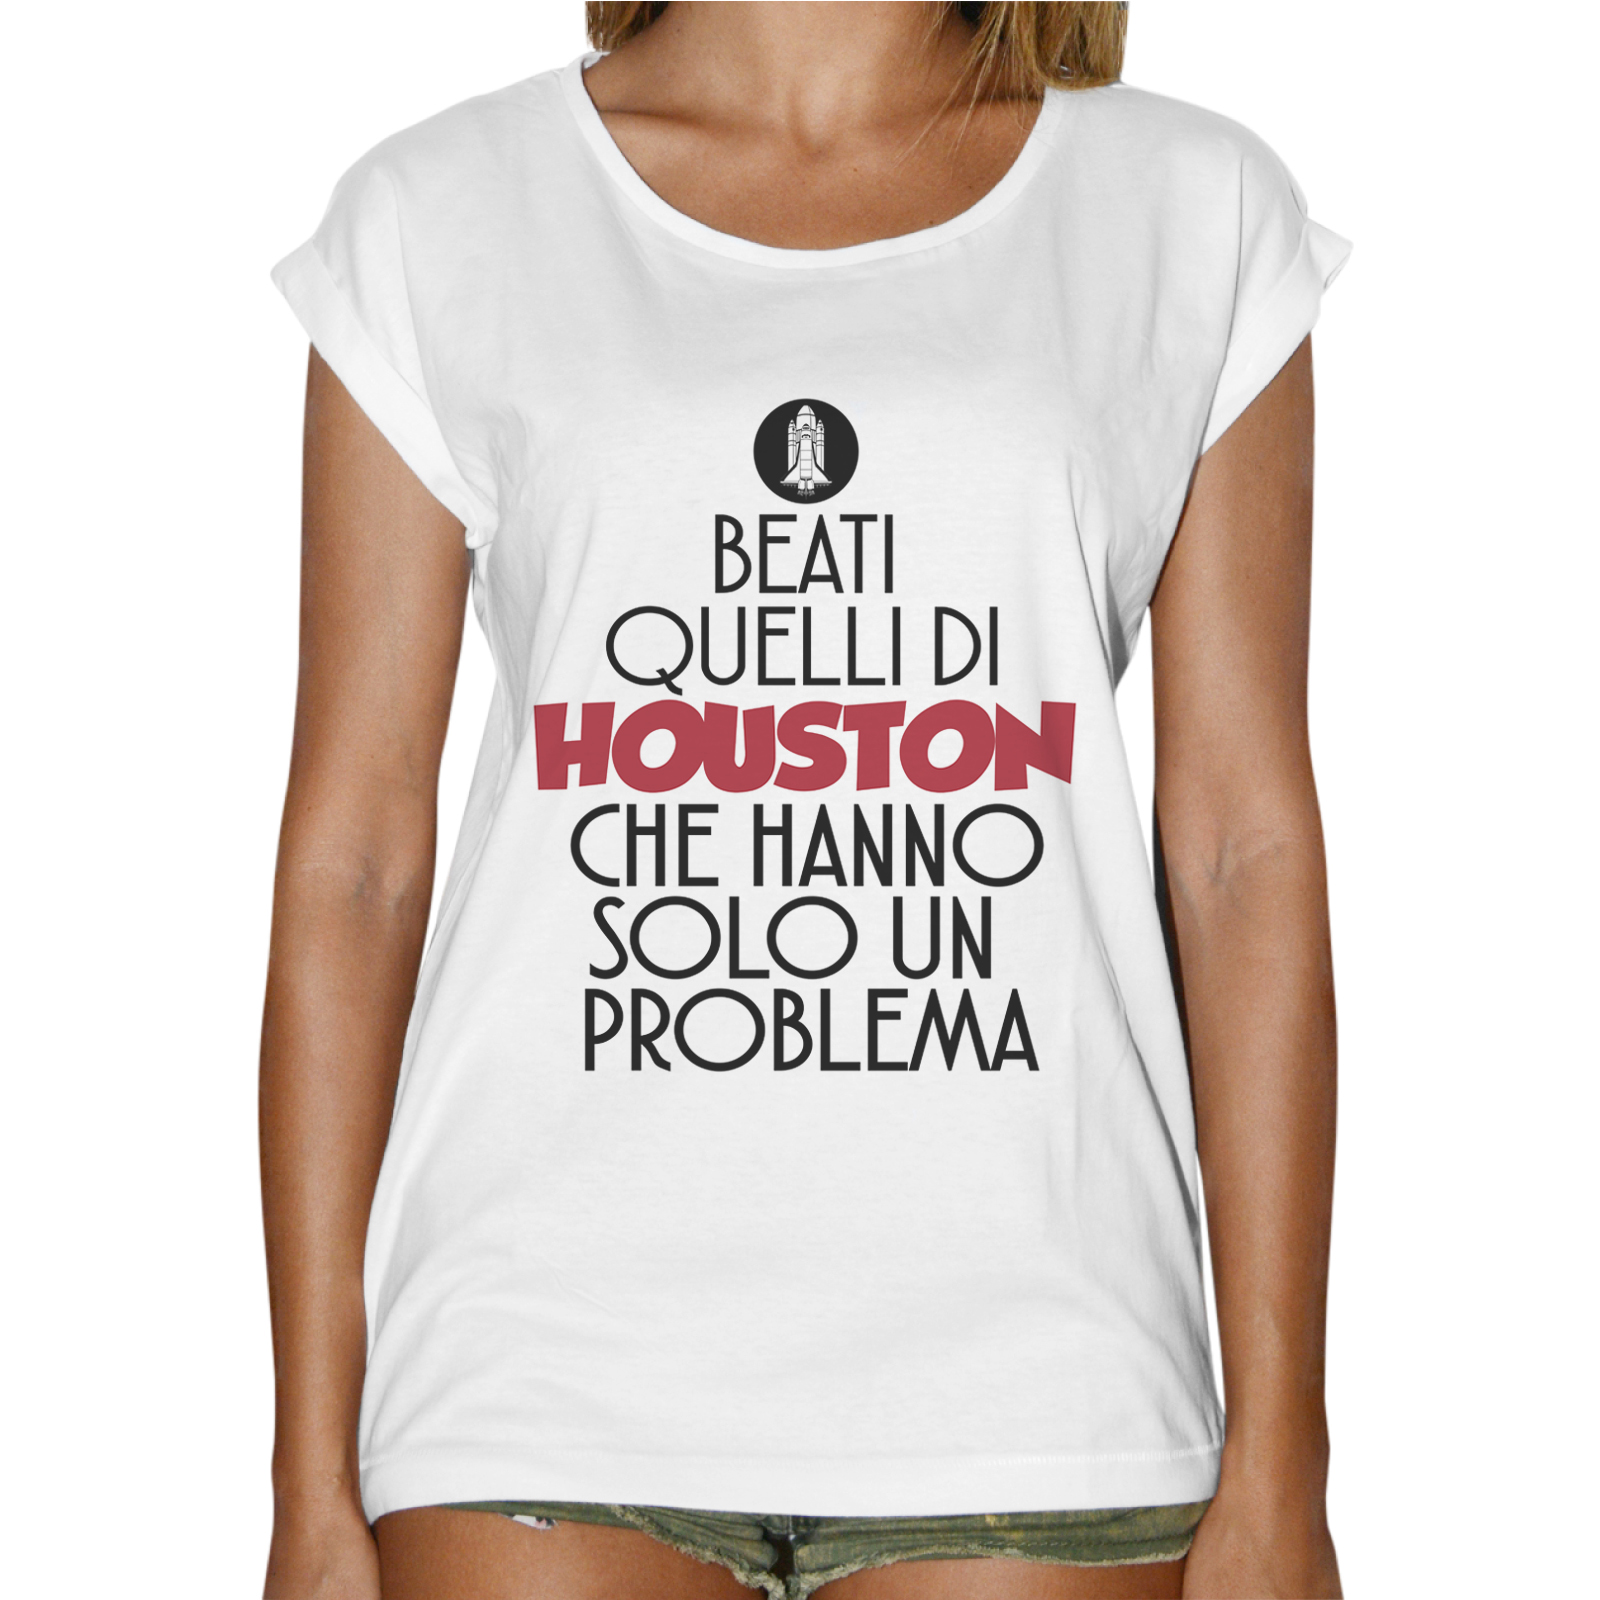 T-Shirt Donna Fashion BEATI QUELLI DI HOUSTON